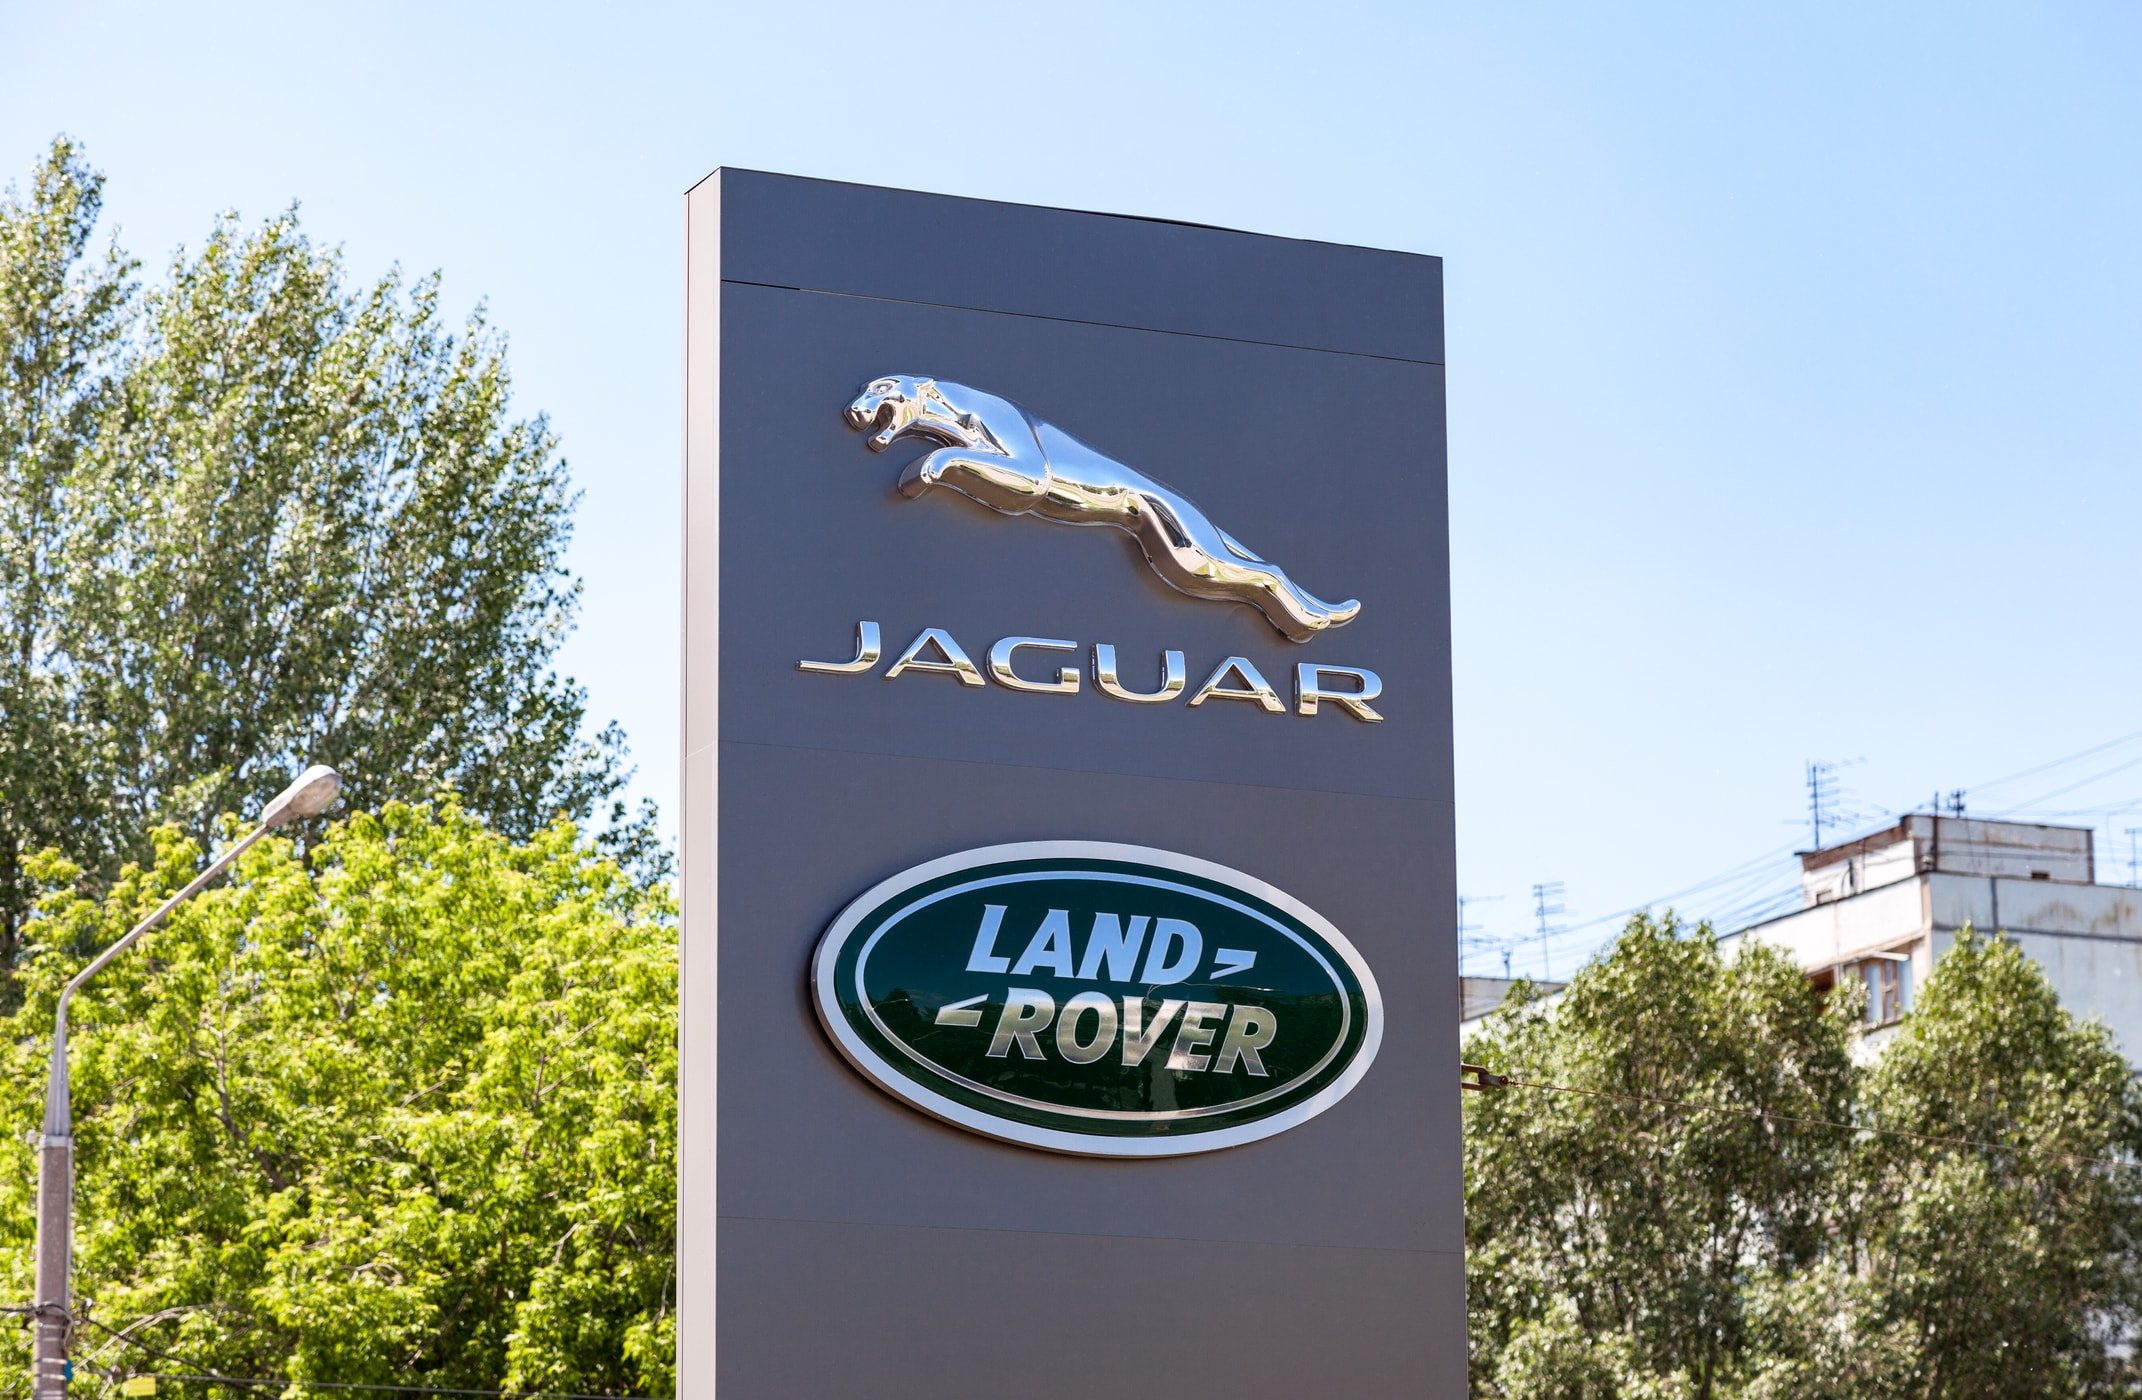 Jaguar Land Rover is testing IOTA